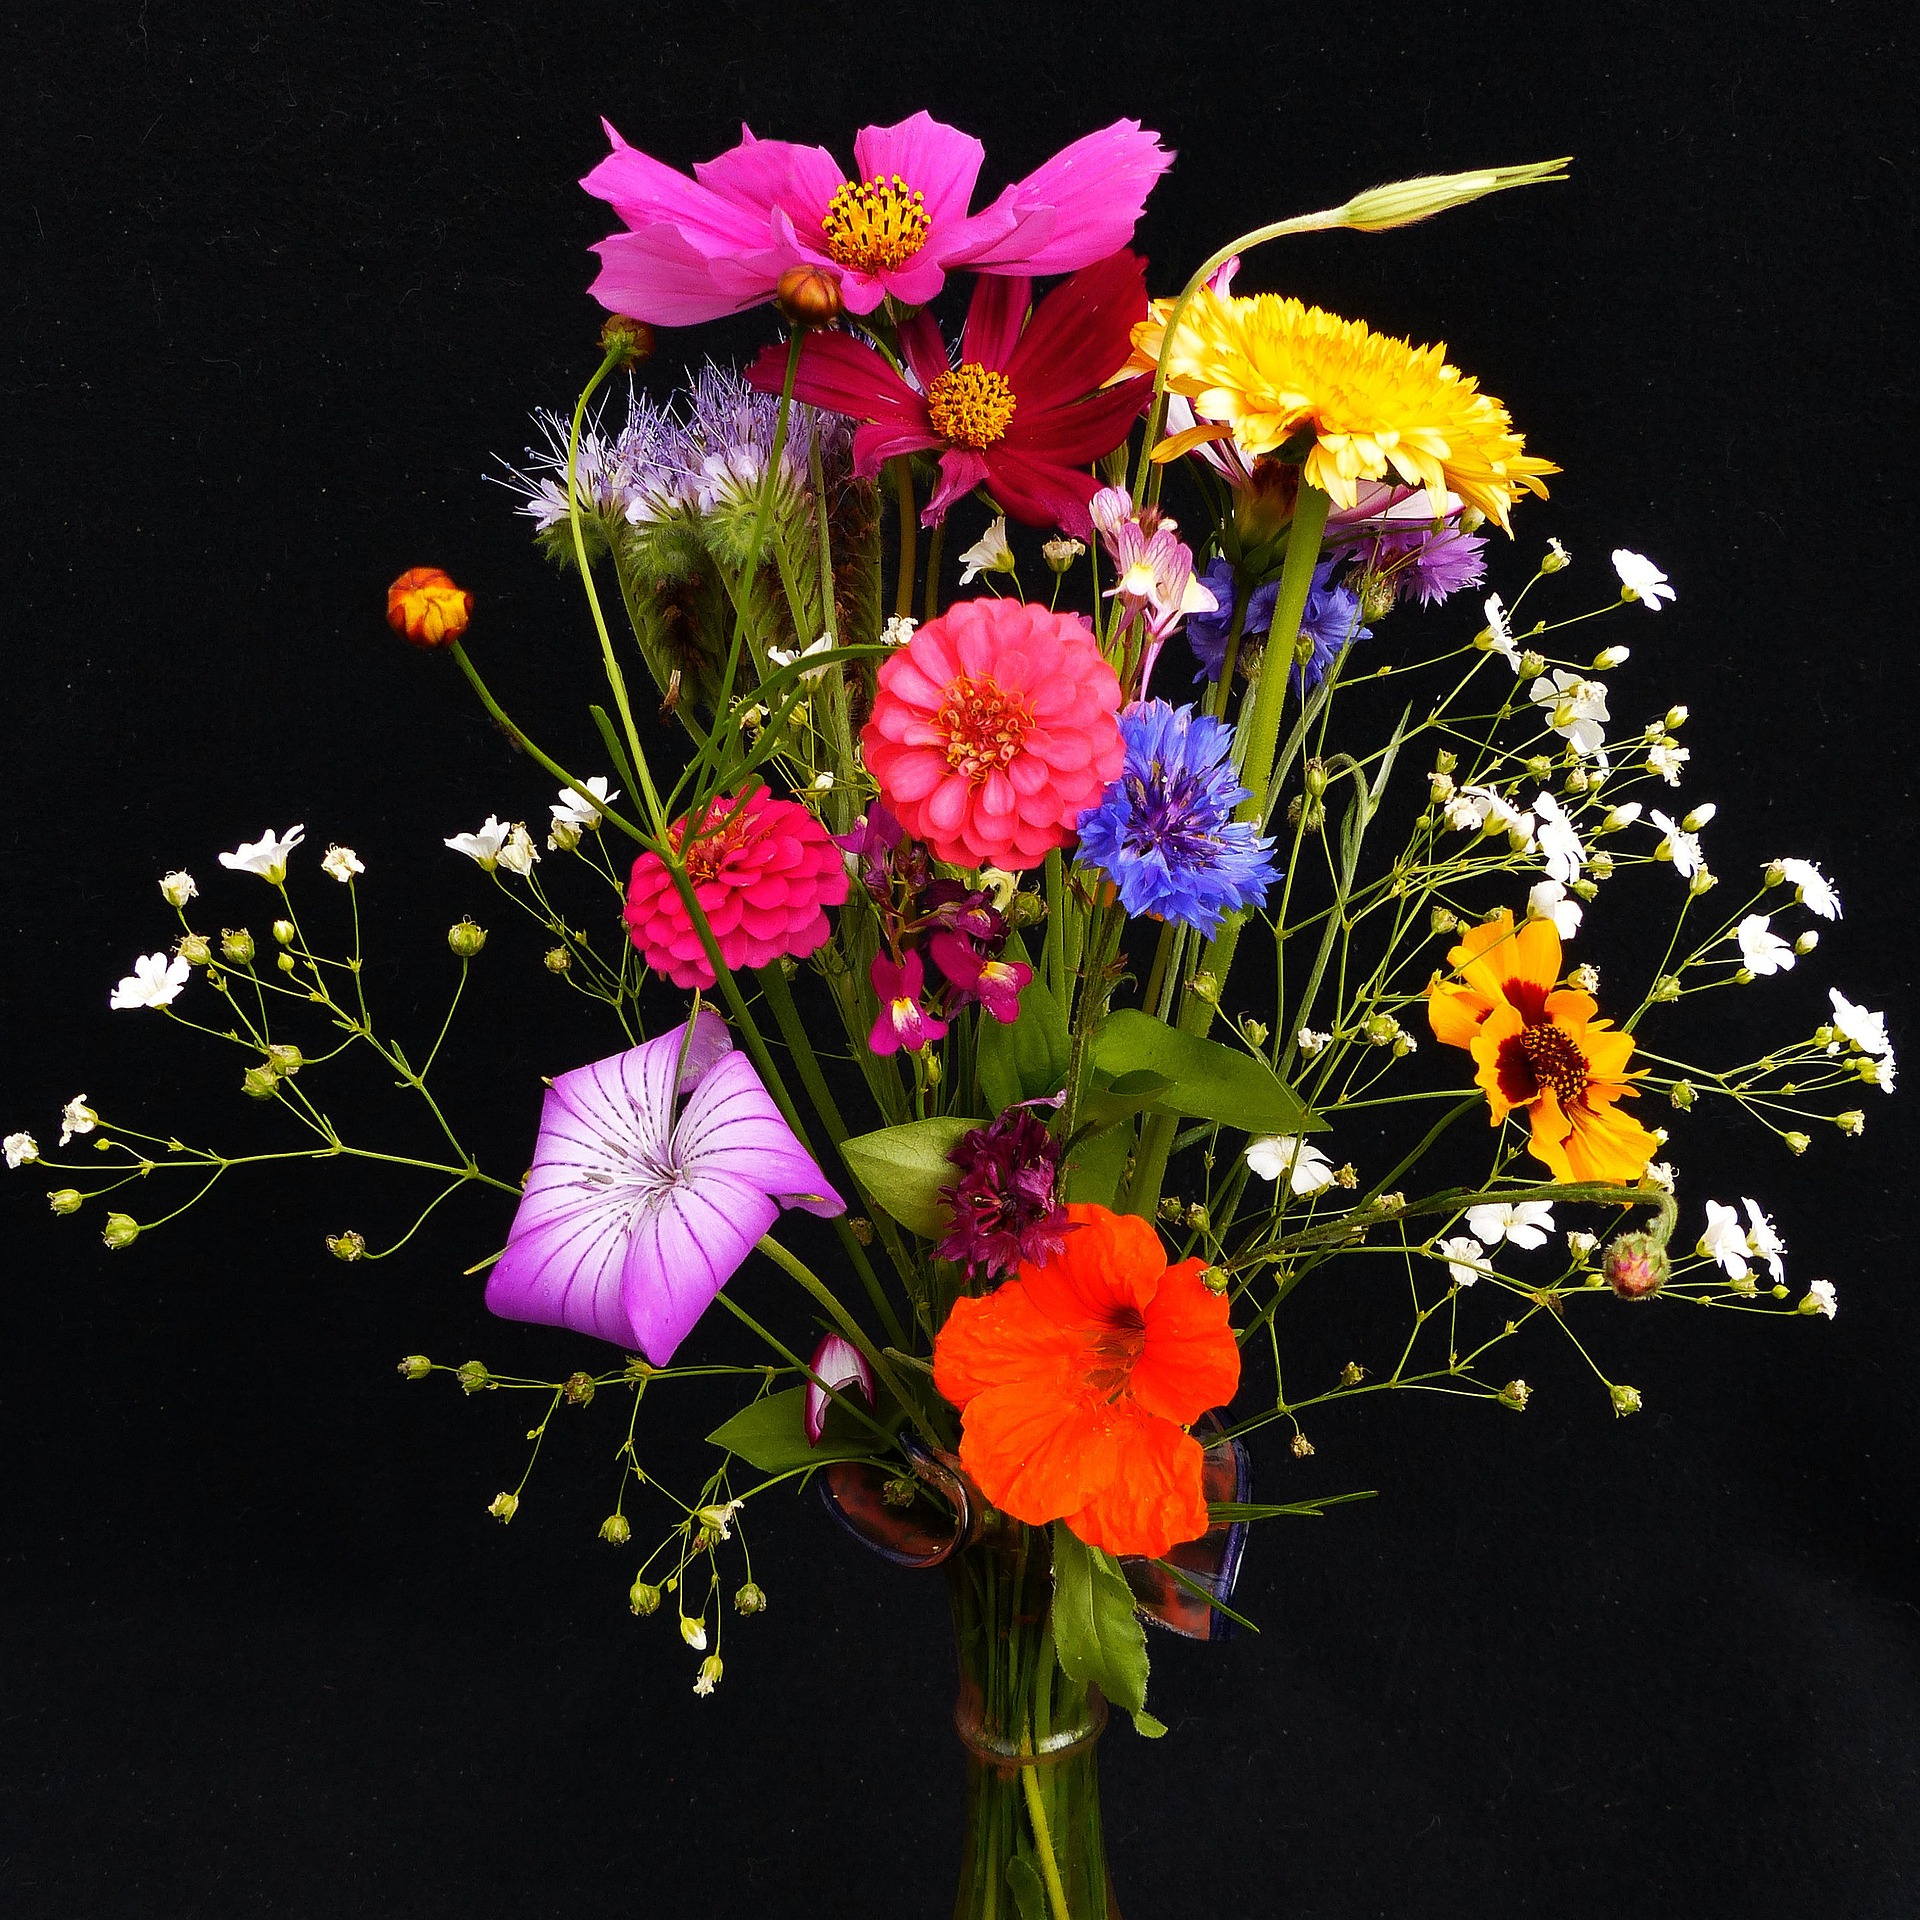 birthday-bouquet-1559029_1920